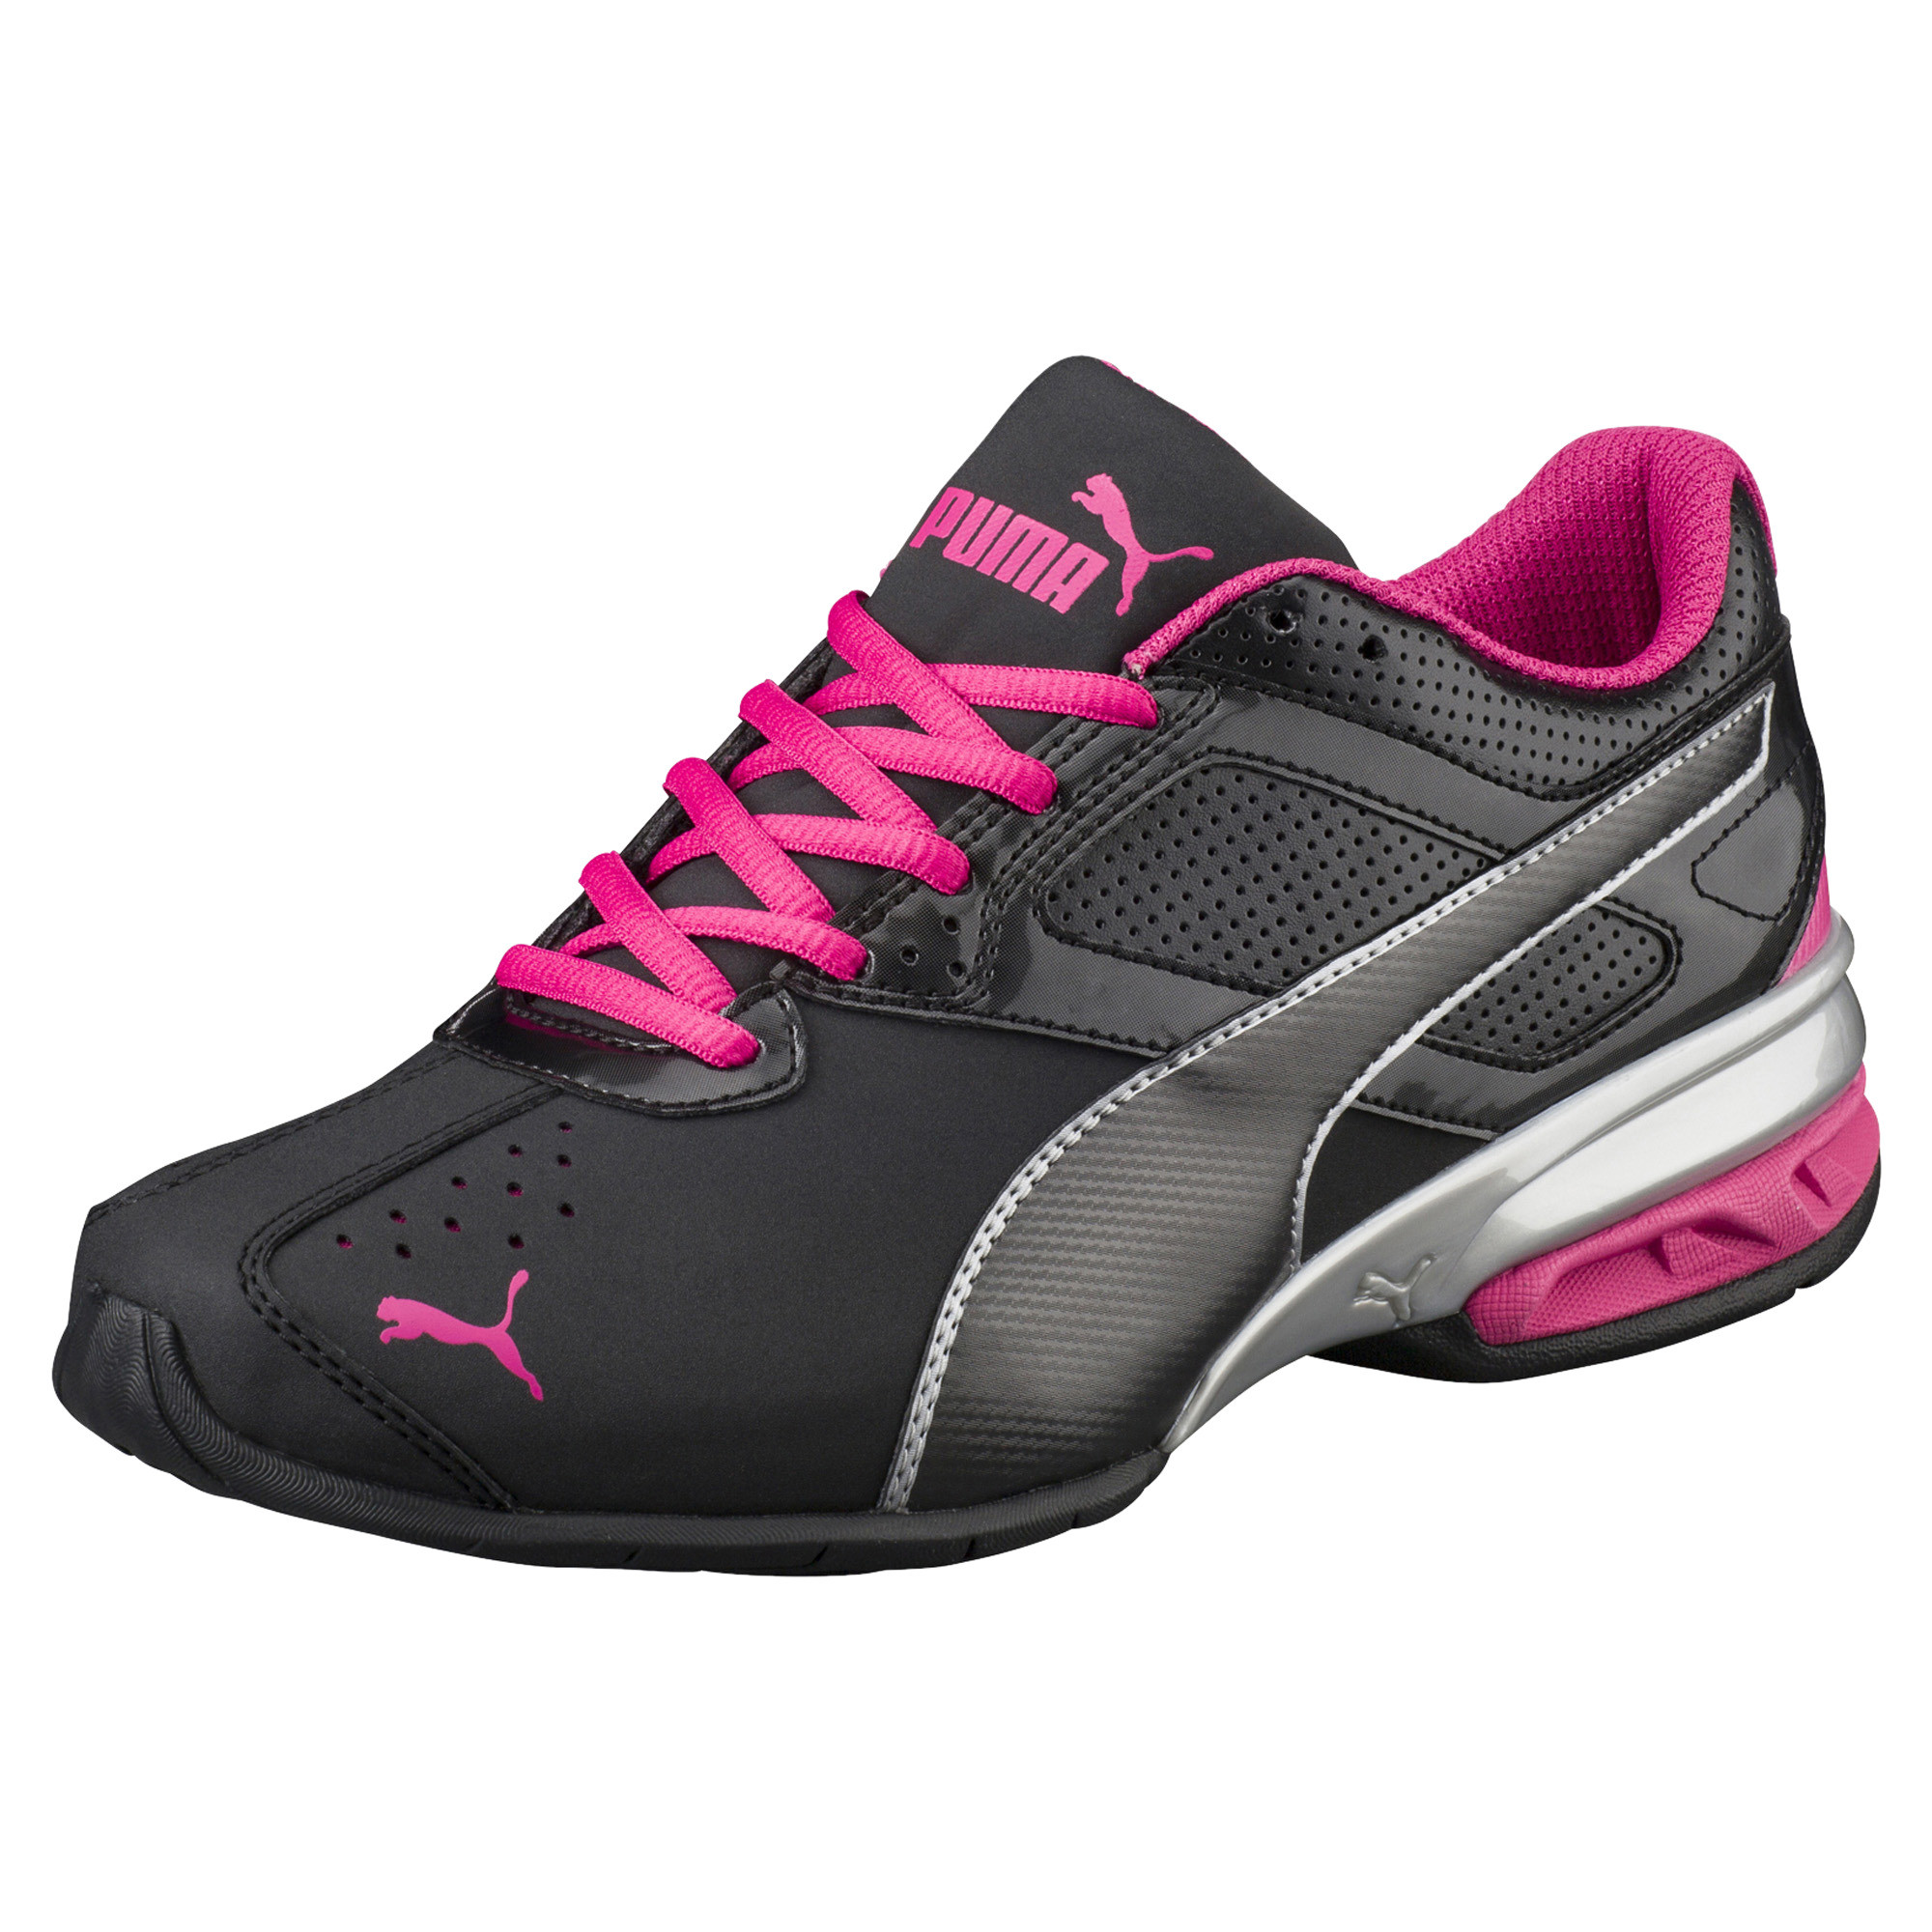 PUMA-Tazon-6-FM-Women-039-s-Sneakers-Women-Shoe-Running thumbnail 4